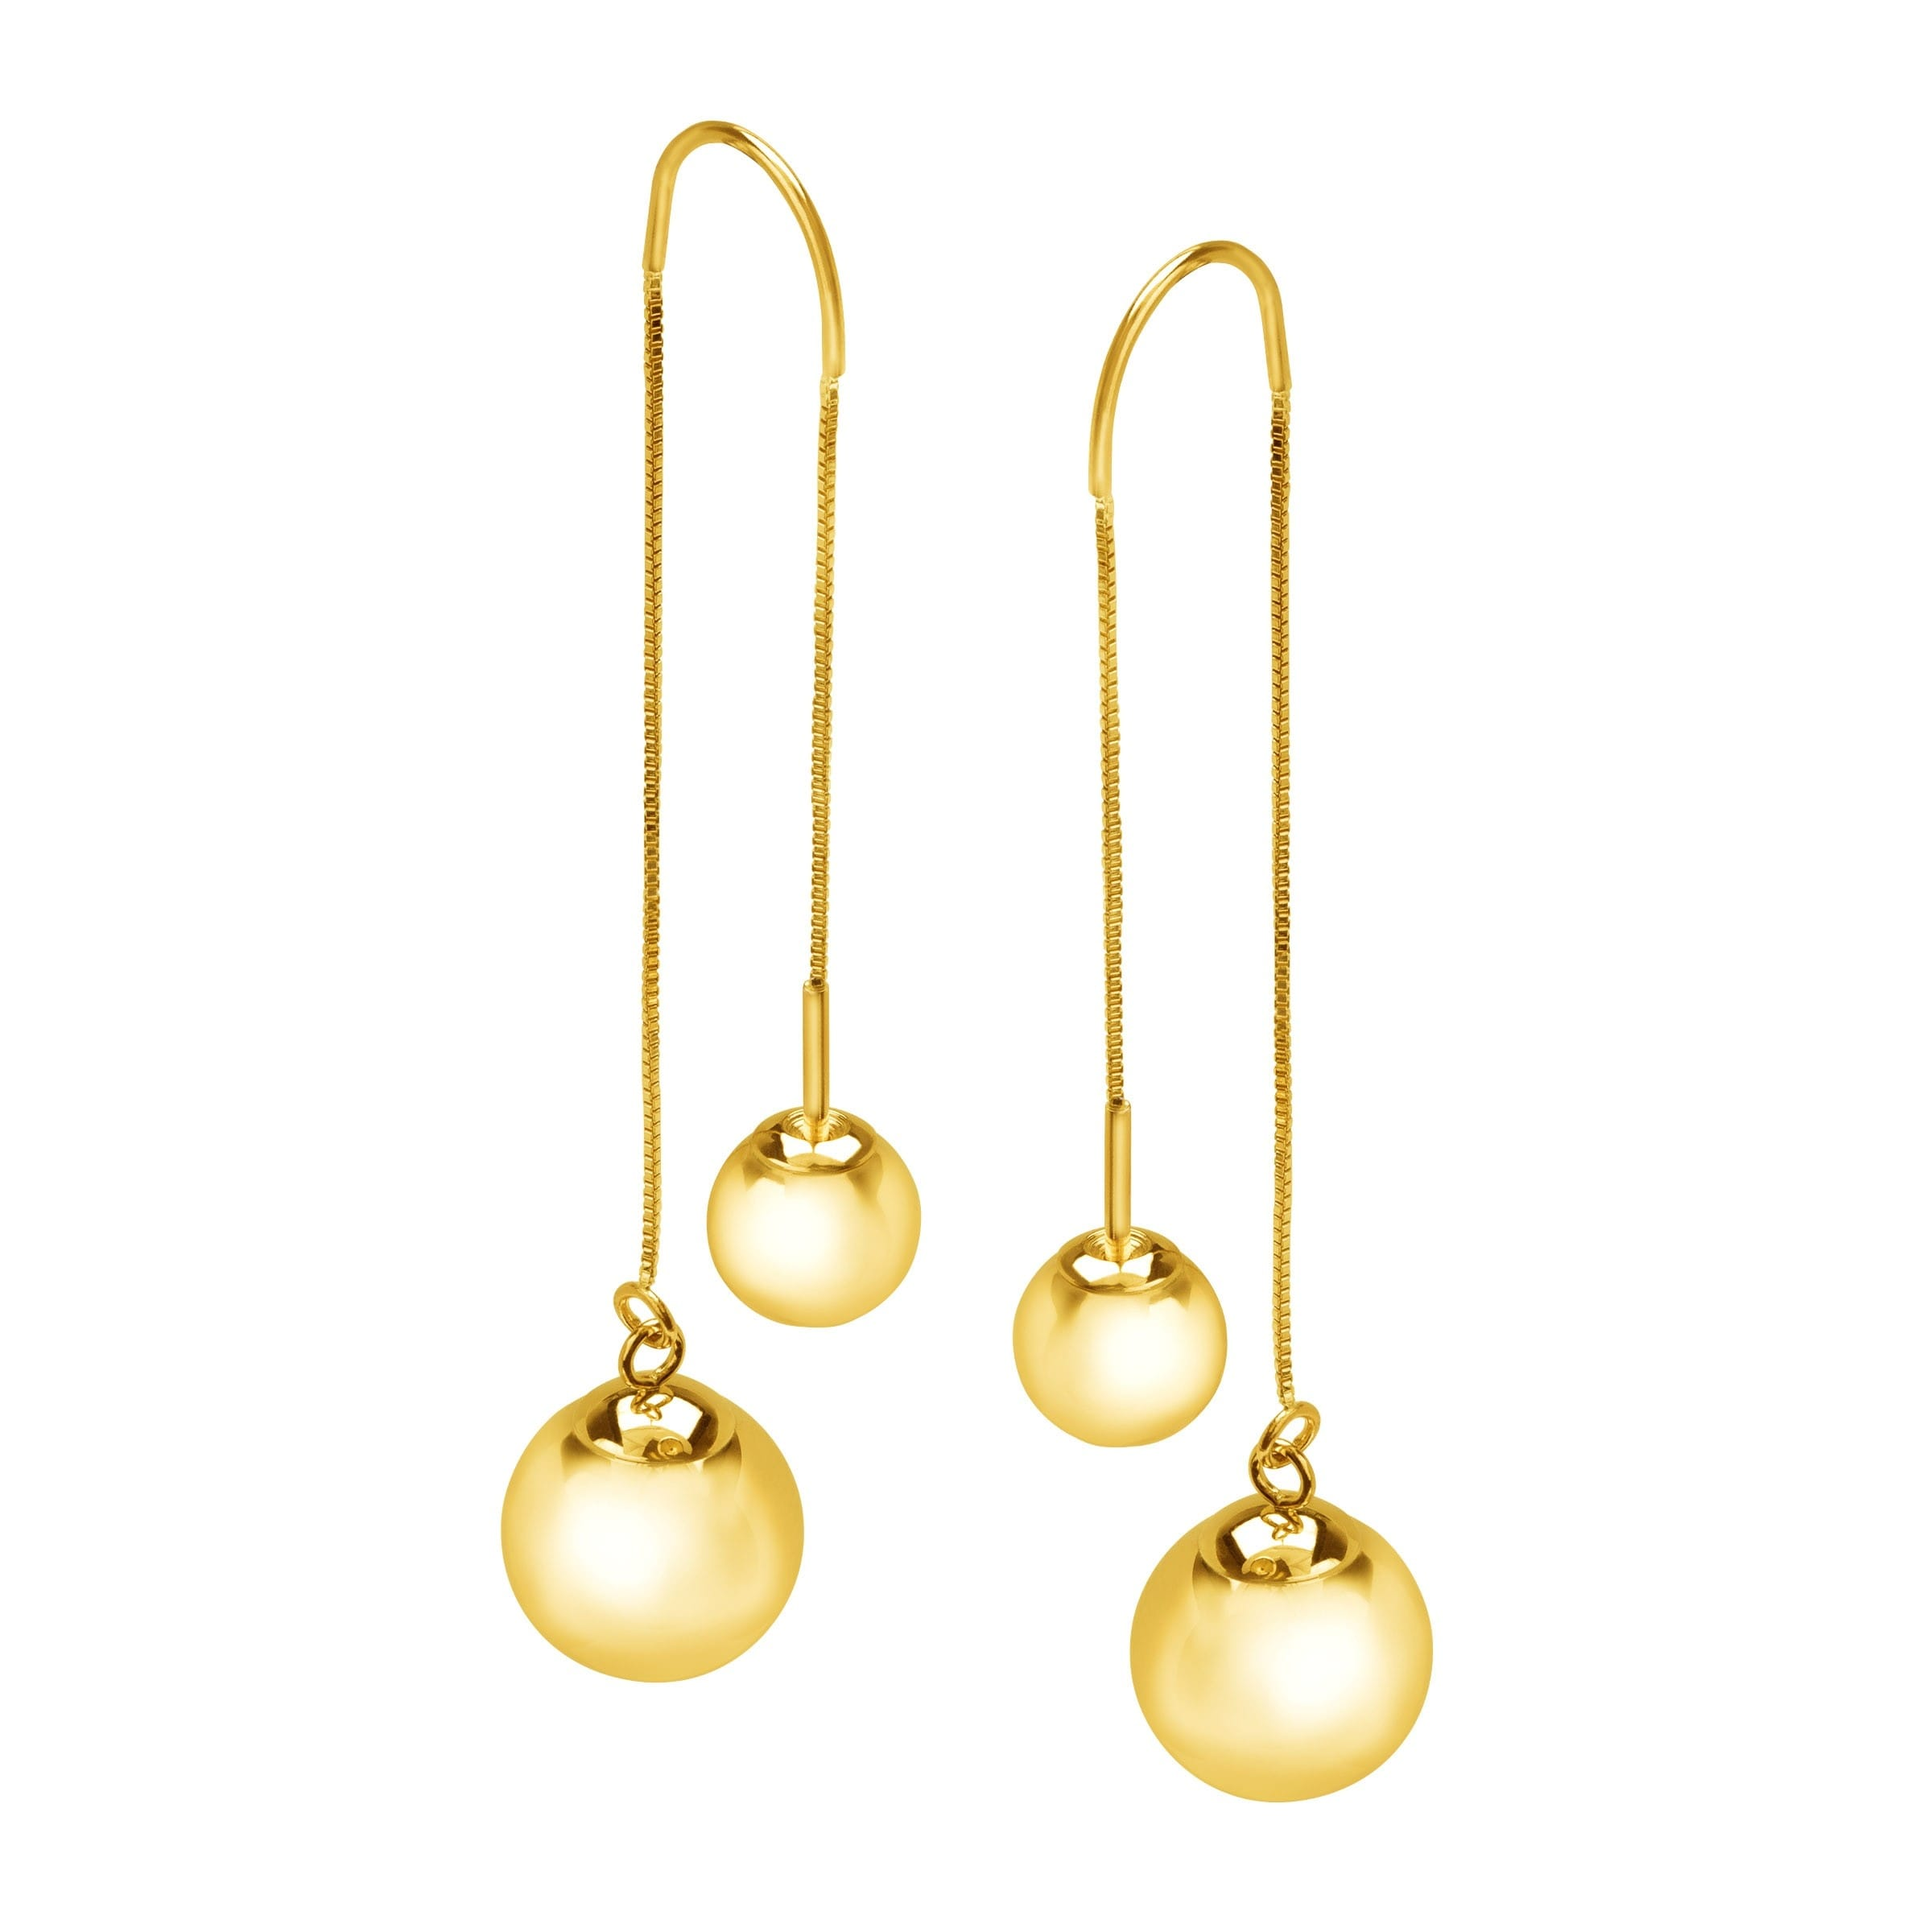 548c9f273 Shop Eternity Gold Ball Stud Threader Drop Earrings in 10K Gold - Yellow -  On Sale - Free Shipping Today - Overstock - 15422153